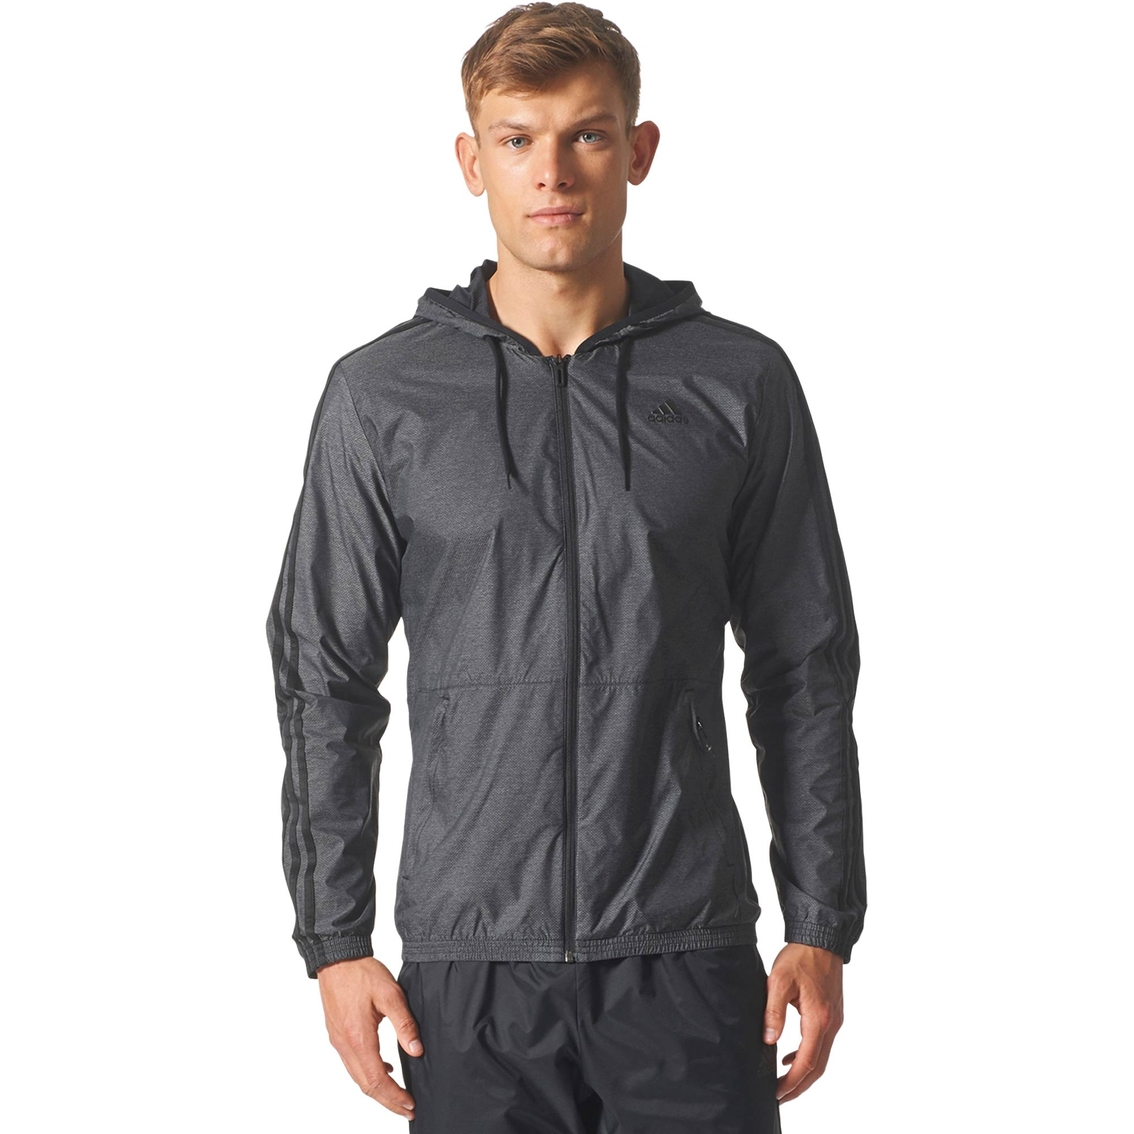 cfba69986 Adidas Ess Wind Jacket | Jackets | Apparel | Shop The Exchange